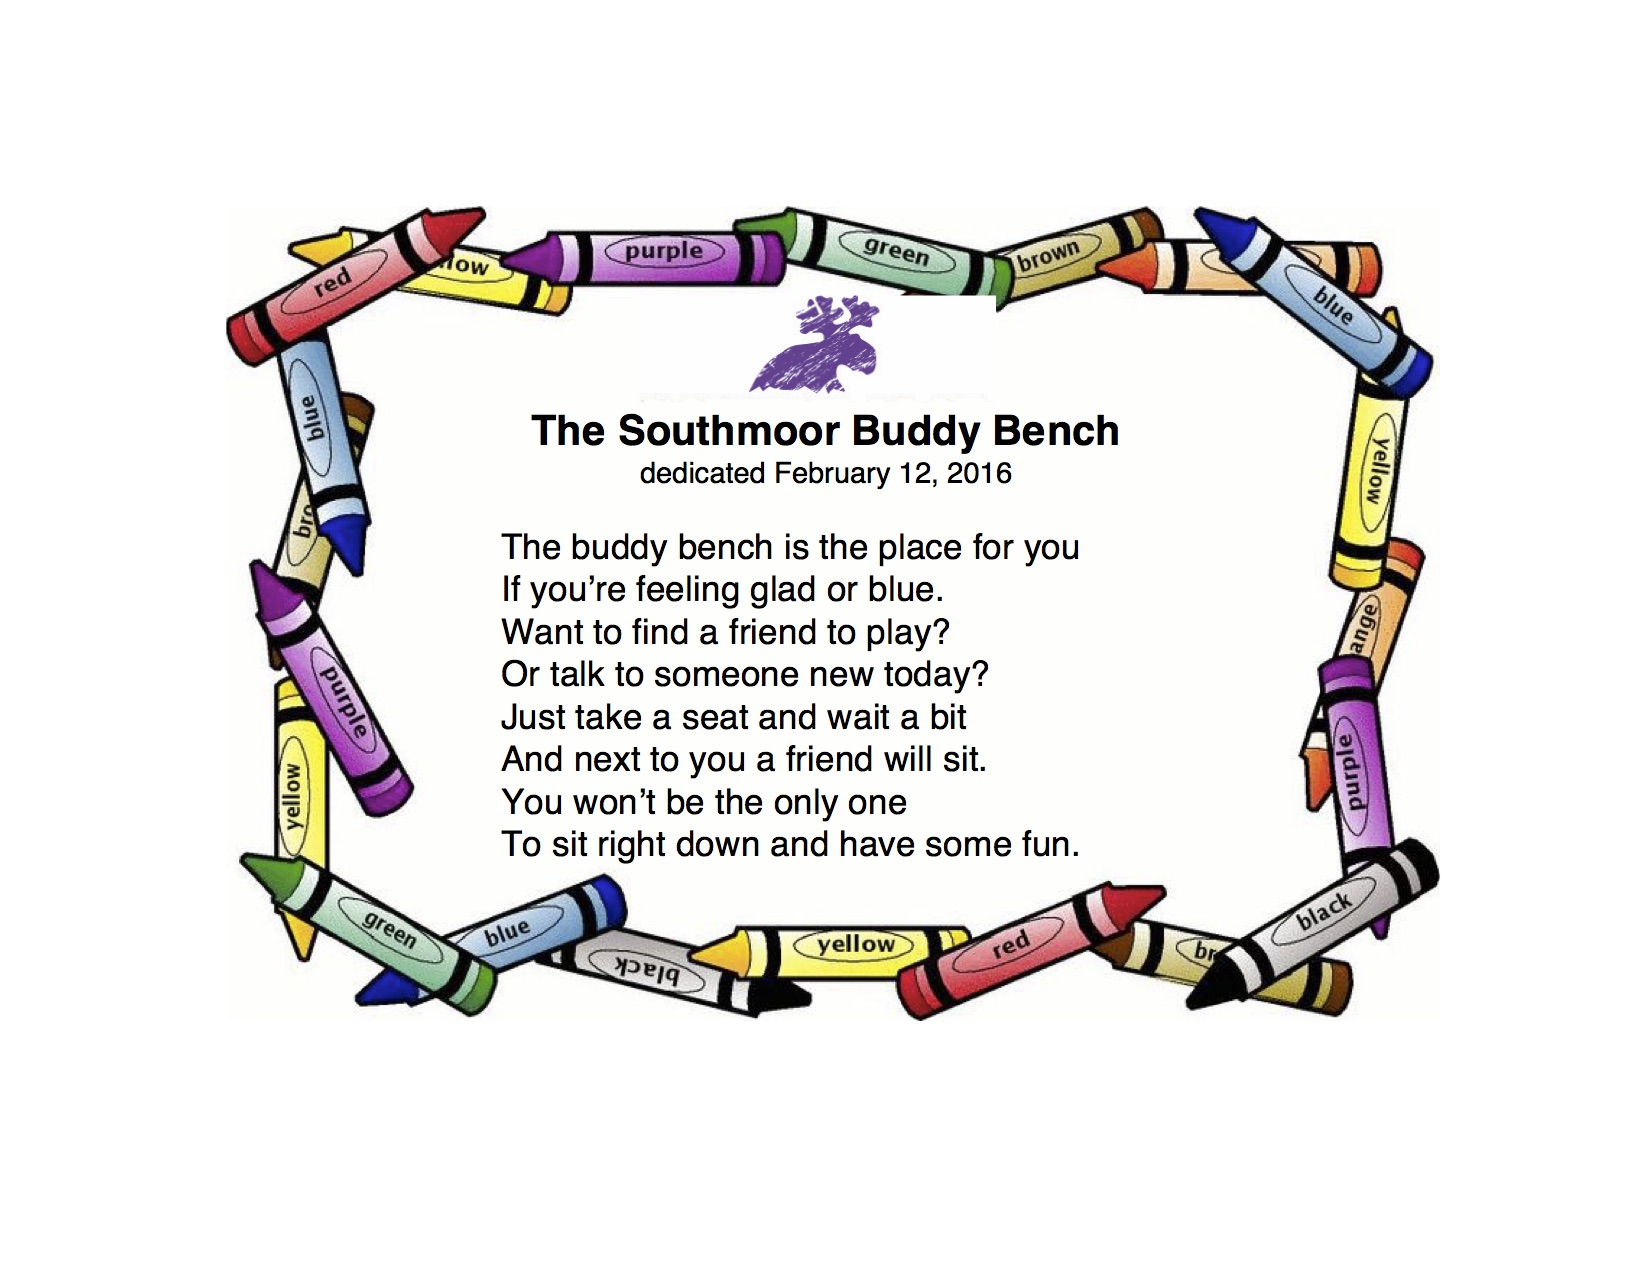 The Southmoor Buddy Bench